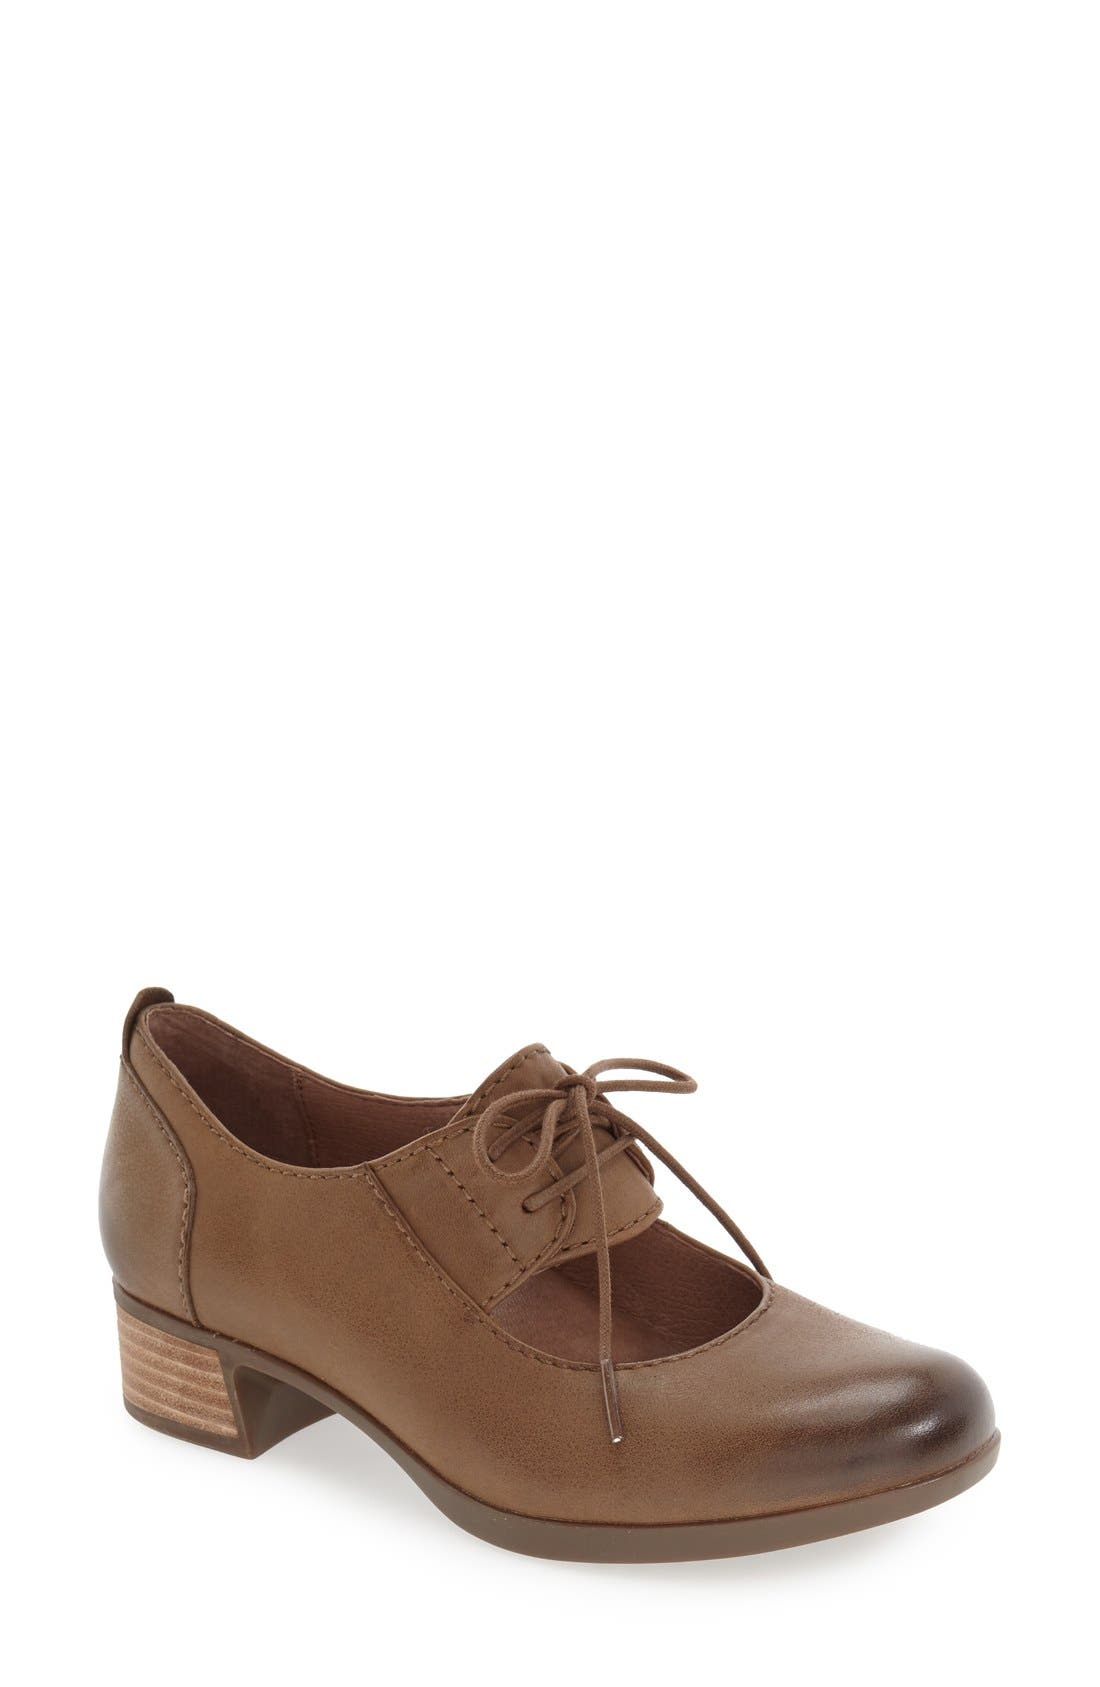 Dansko 'Linda' Lace-Up Pump (Women)